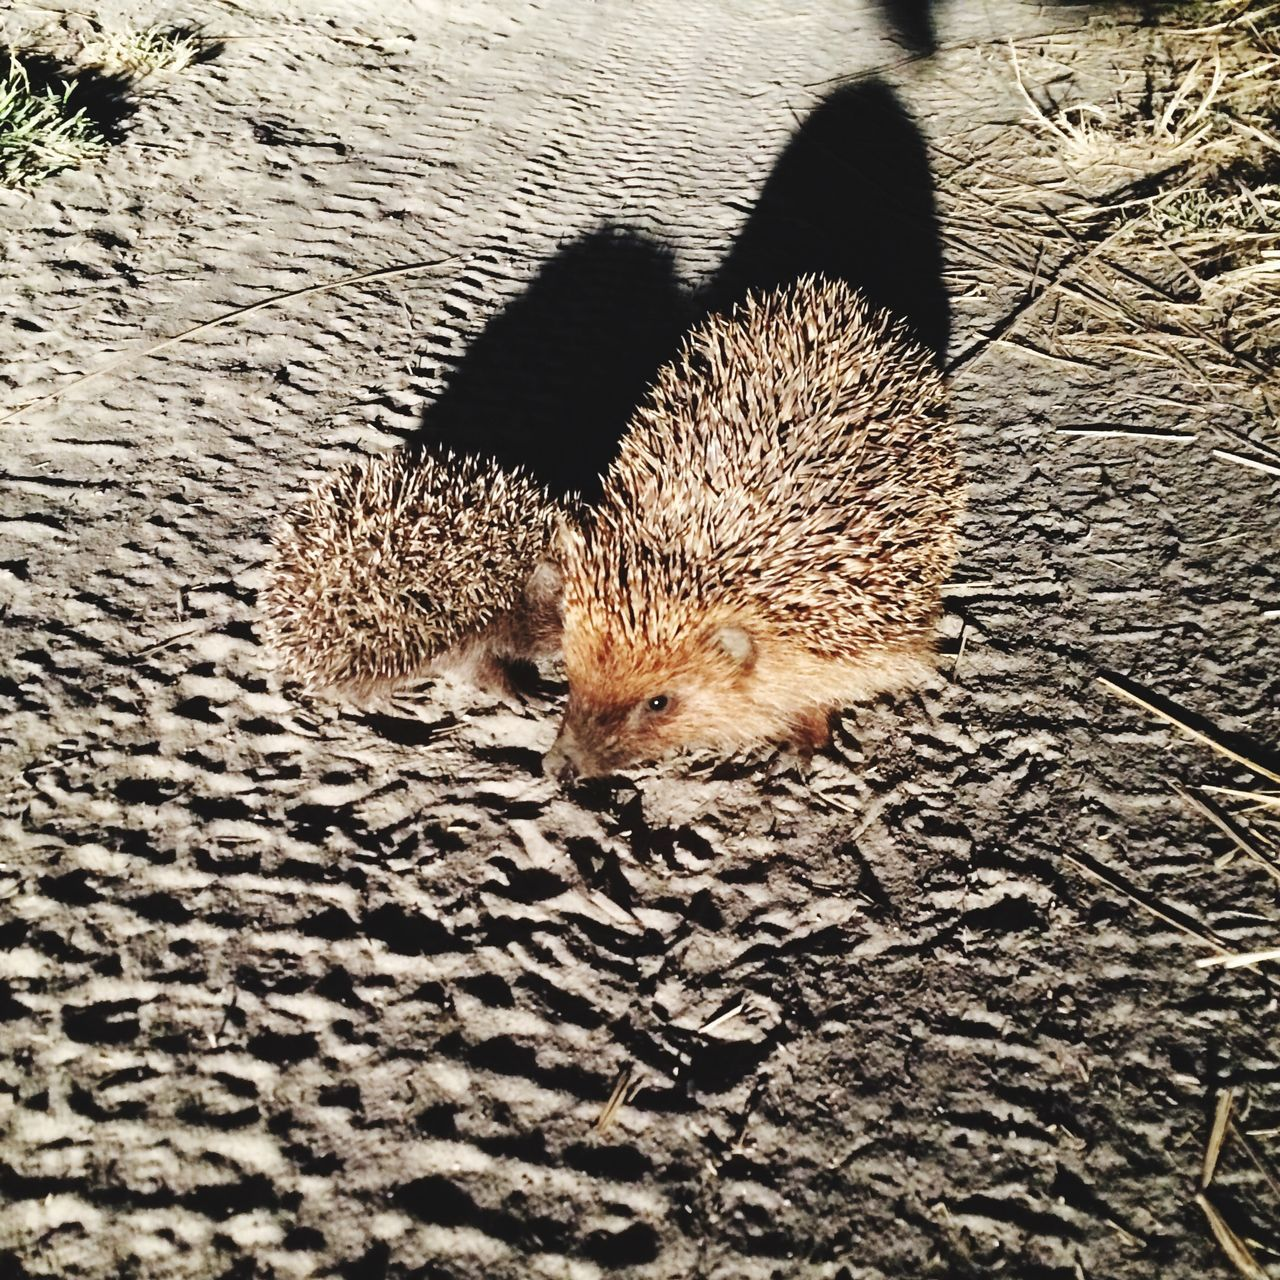 hedgehog family Hedge Hedgehog Hedgehog Family Hedgehogs Hedgehogging Hedgehogs On The Road Cute Cute Animals Family Animal Themes Animals Animal Animals In The Wild Animal Photography Animal Love Animal Portrait Animal Family